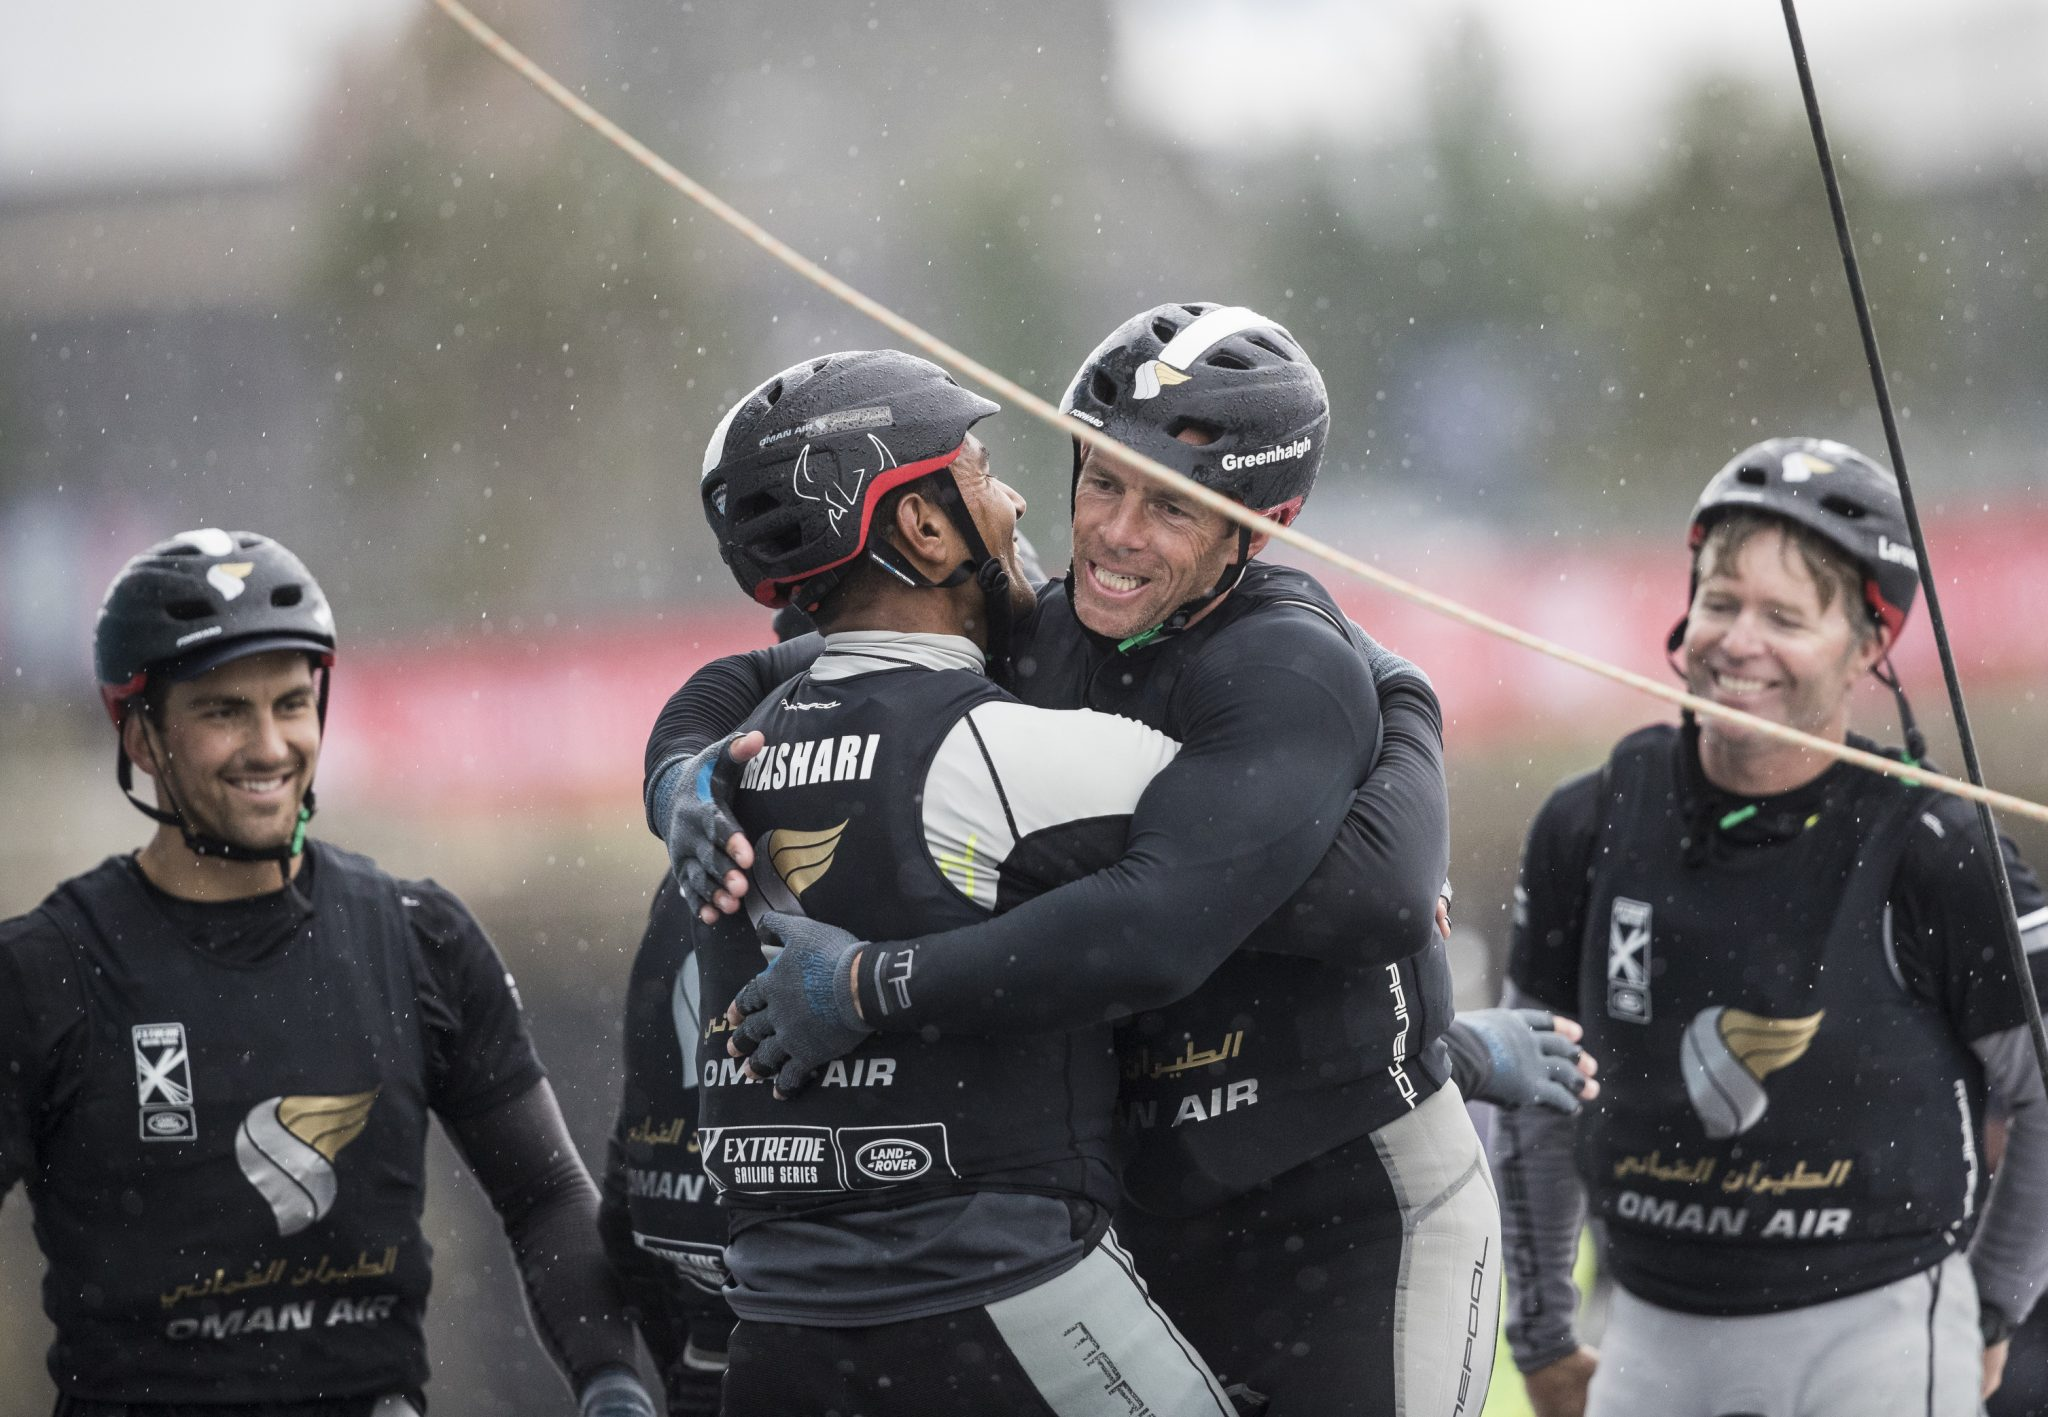 Cardiff. UK. 26th June 2016. The Extreme Sailing Series 2016. Act3. Cardiff Bay. Winners of the Cardiff event - Oman Air skippered by Morgan Larson (USA) with trimmer Pete Greenhalgh (GBR). Bowman James Wierzbowsk (AUS) Trimmer Ed Smyth (NZL) and Nasser Al Mashari (OMA) Credit : Lloyd Images